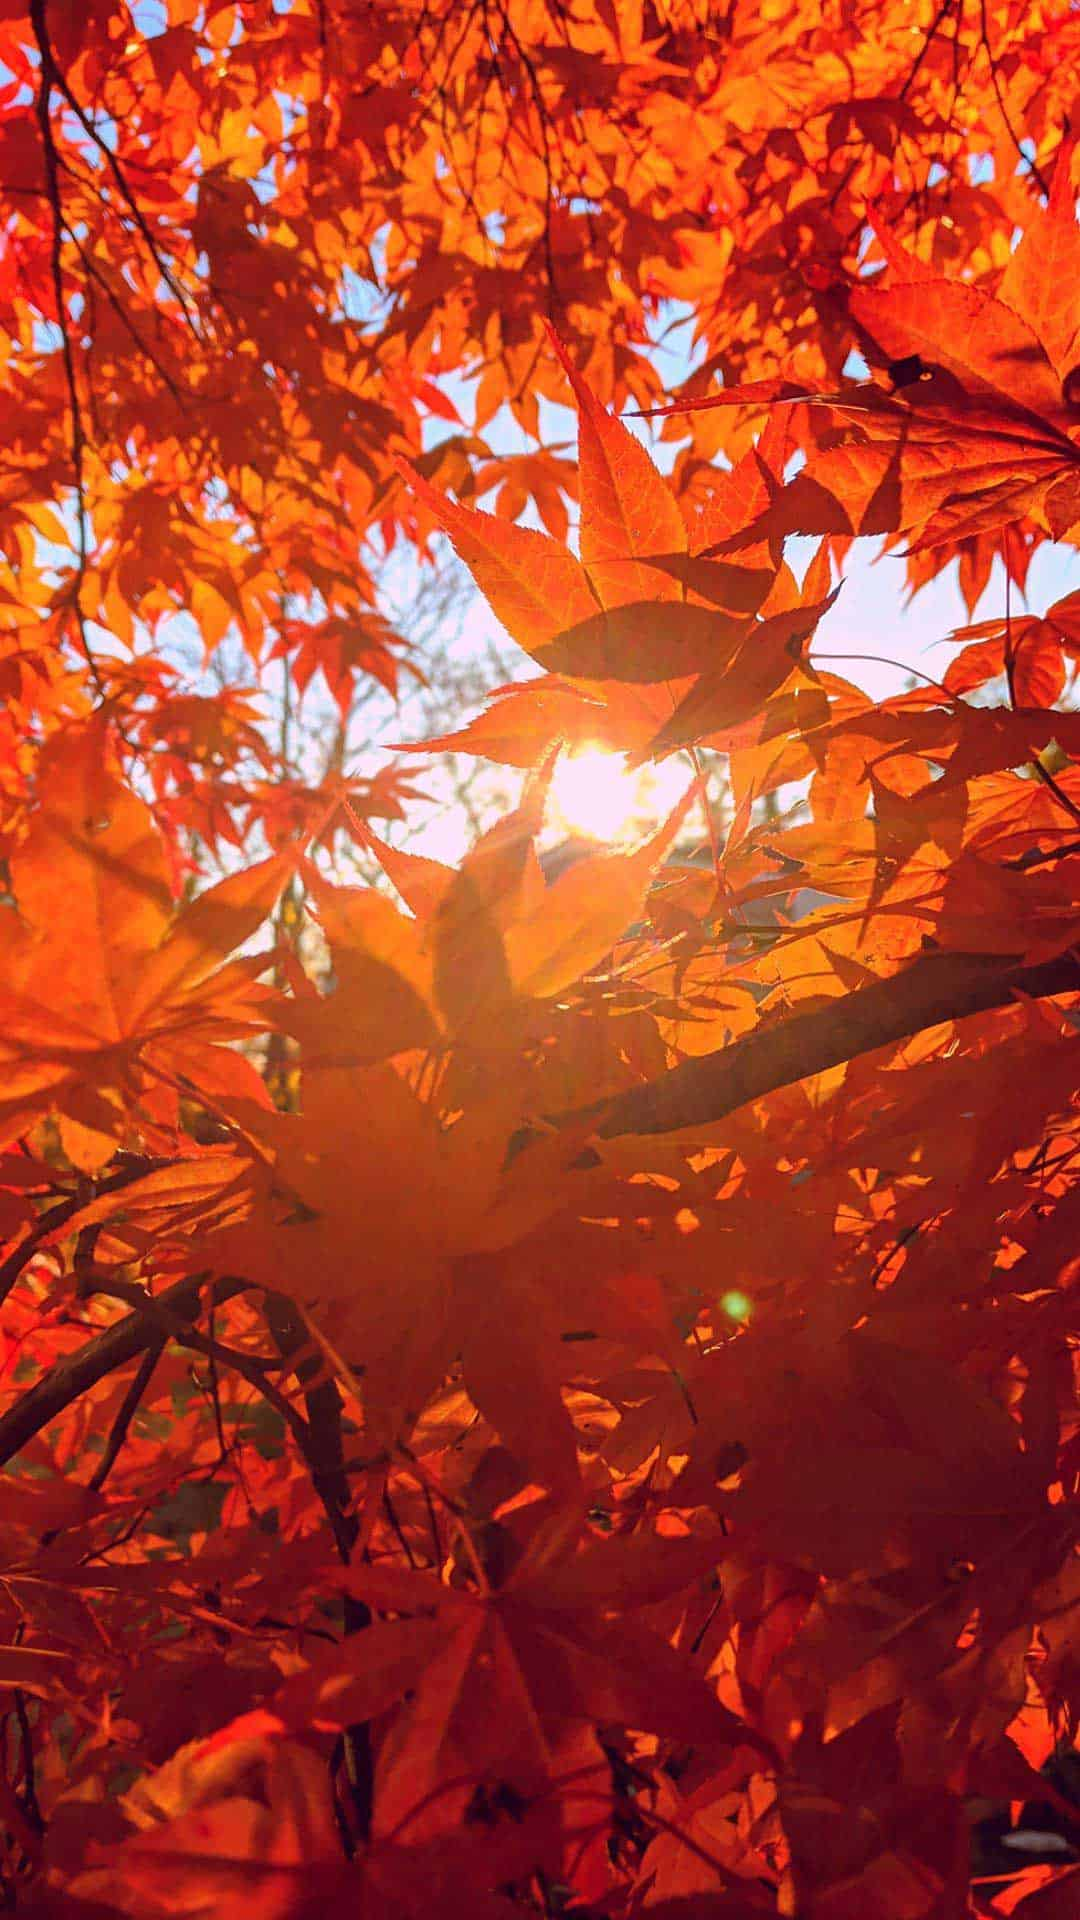 Aesthetic Background Pictures For Phone - Aesthetic Fall ...